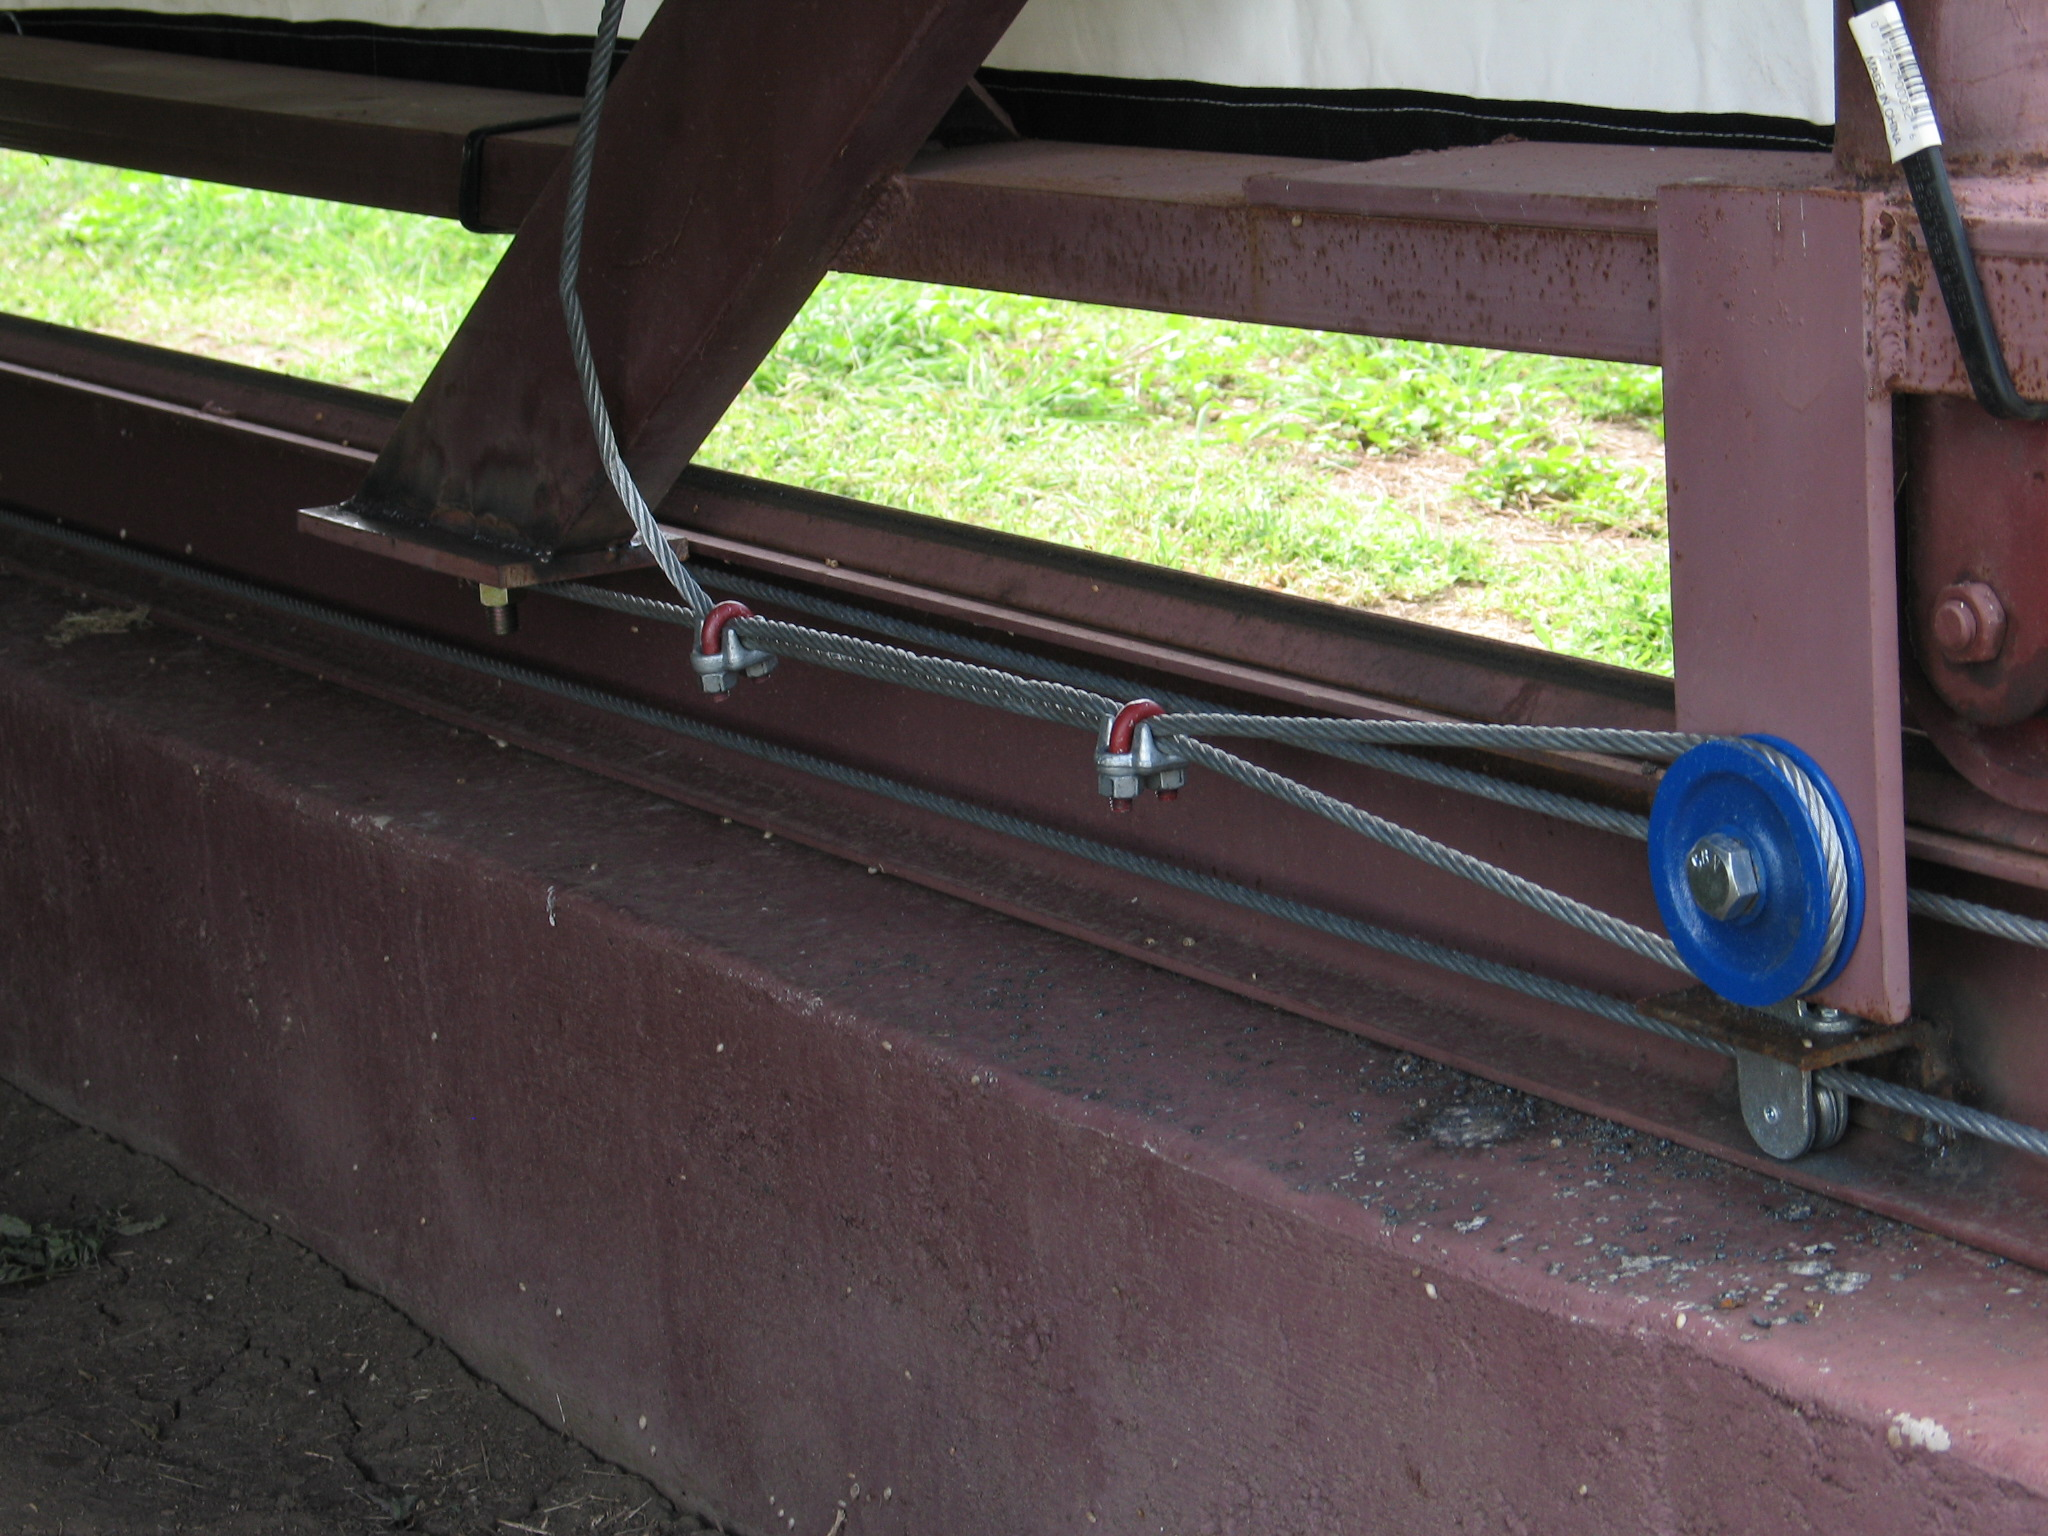 This slideshow presents the rainout shelter's components, such as the rail and wheels, structure, cables, and rain meter.